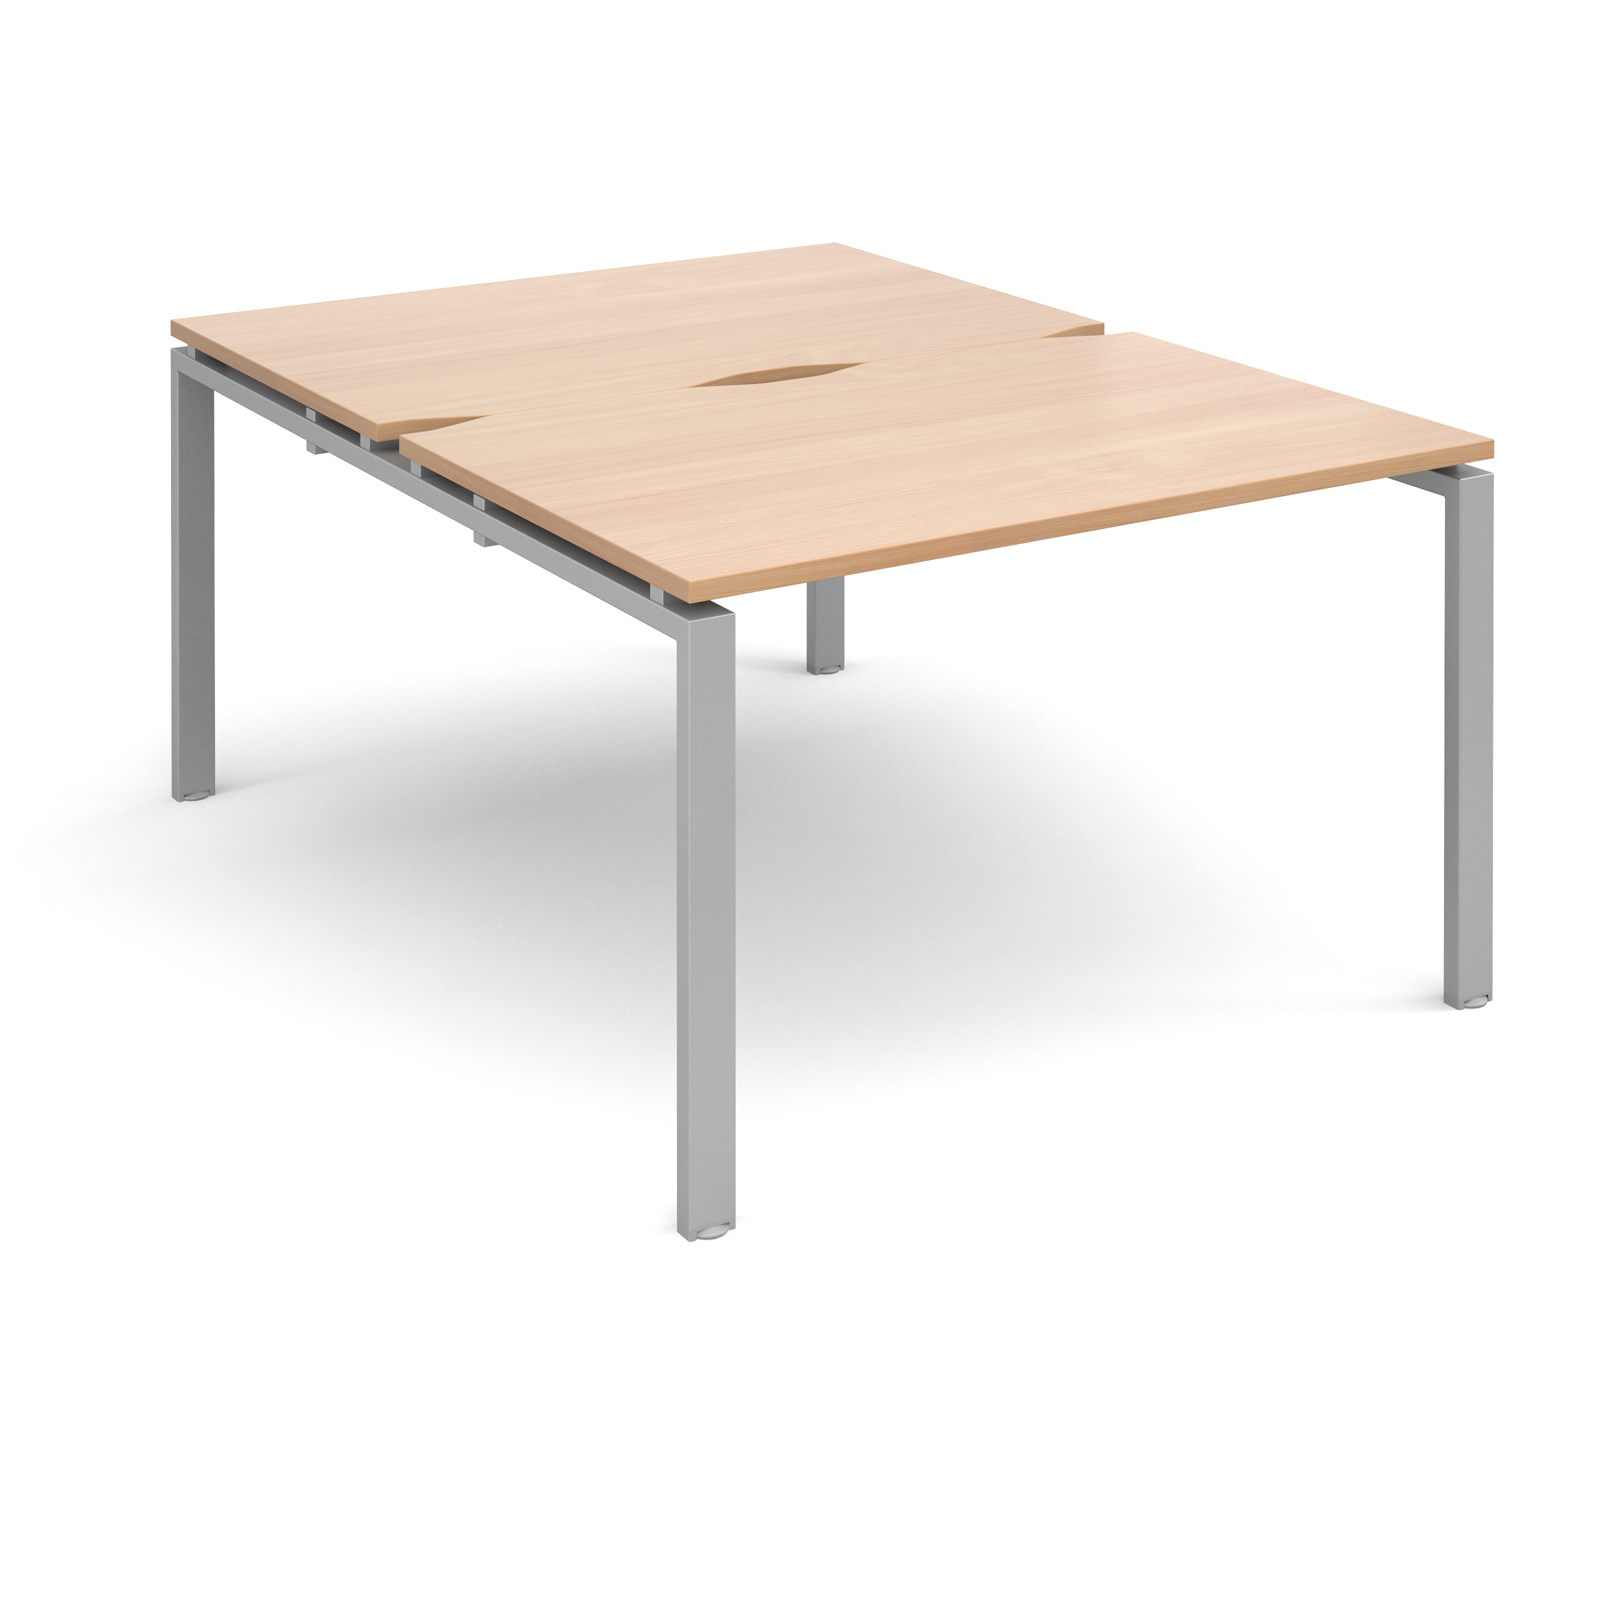 Adapt II 1200 x 1600 x 725mm Back to Back Desk - Beech / Silver Leg